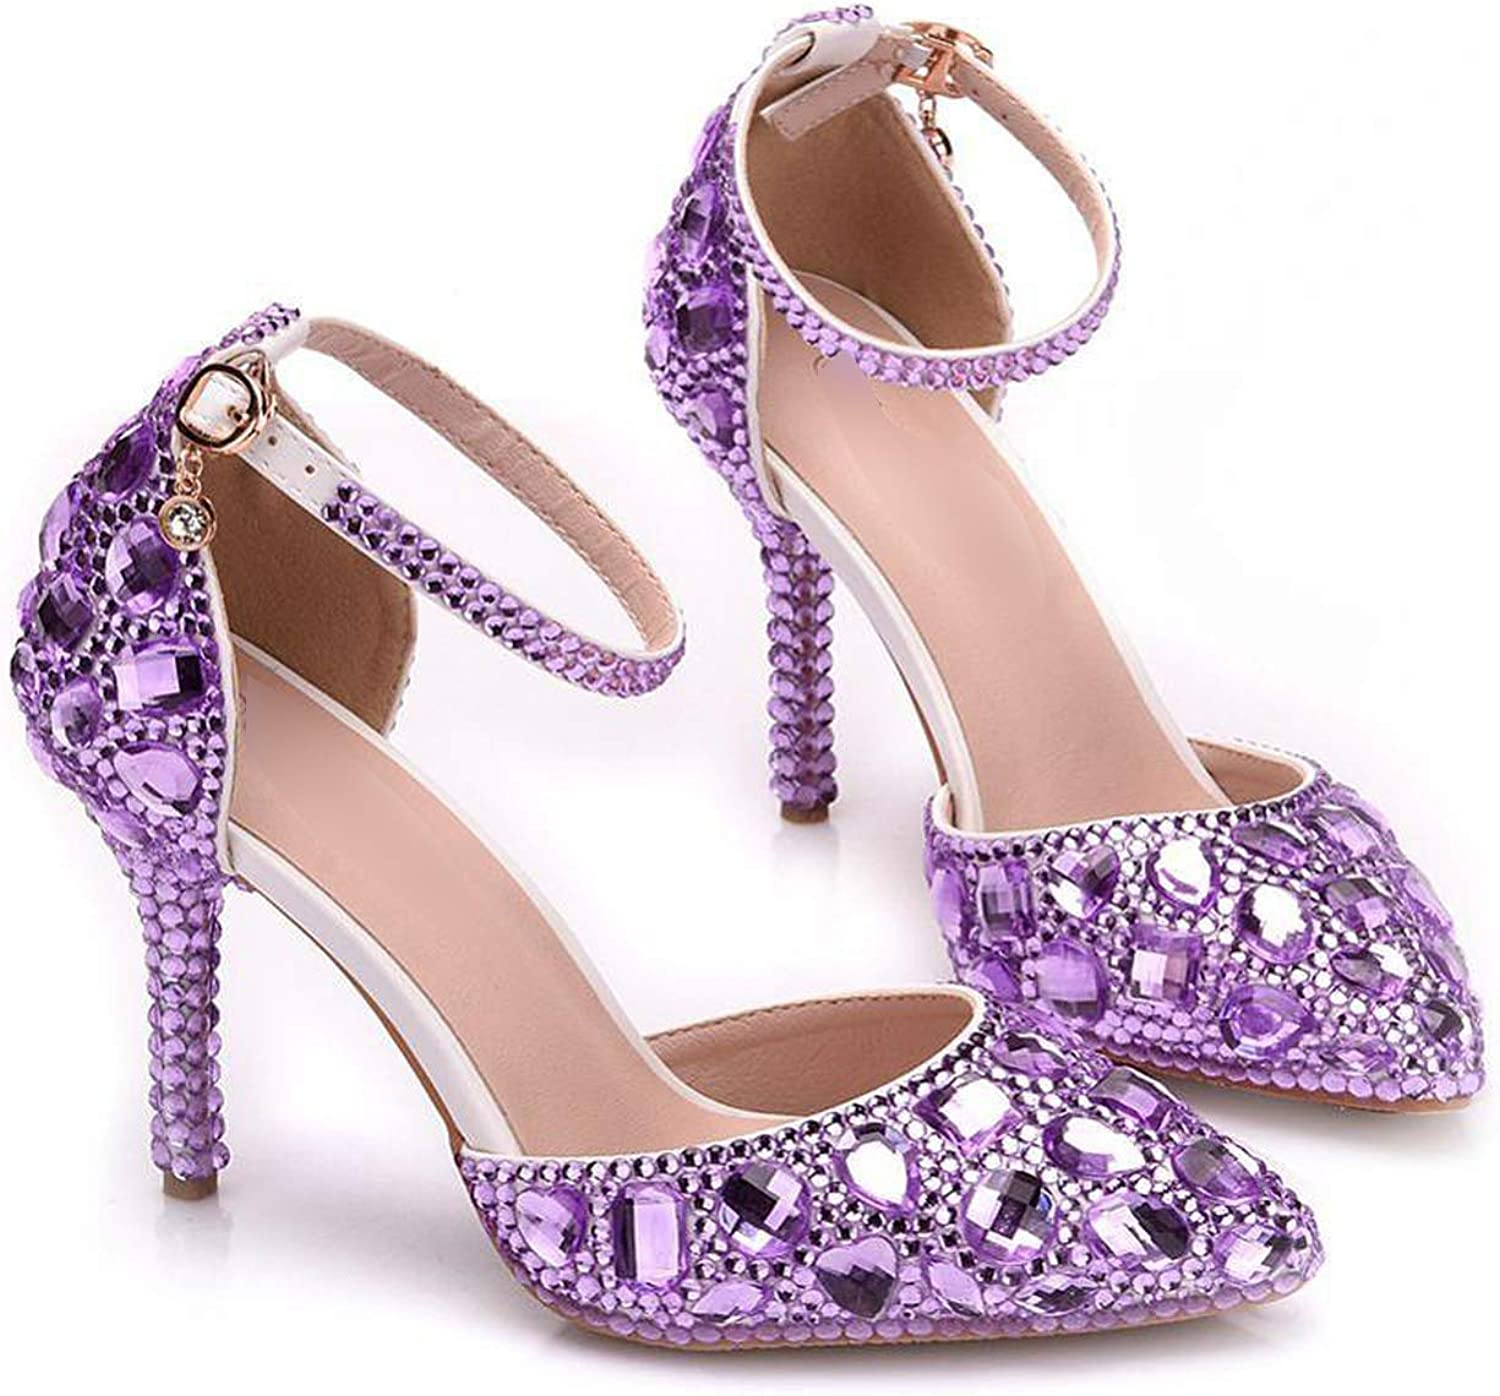 Sunny Doll shoes 2019 Women High Heels Pumps Full Crystal Party Wedding shoes Sexy Heels Buckle Ladies shoes